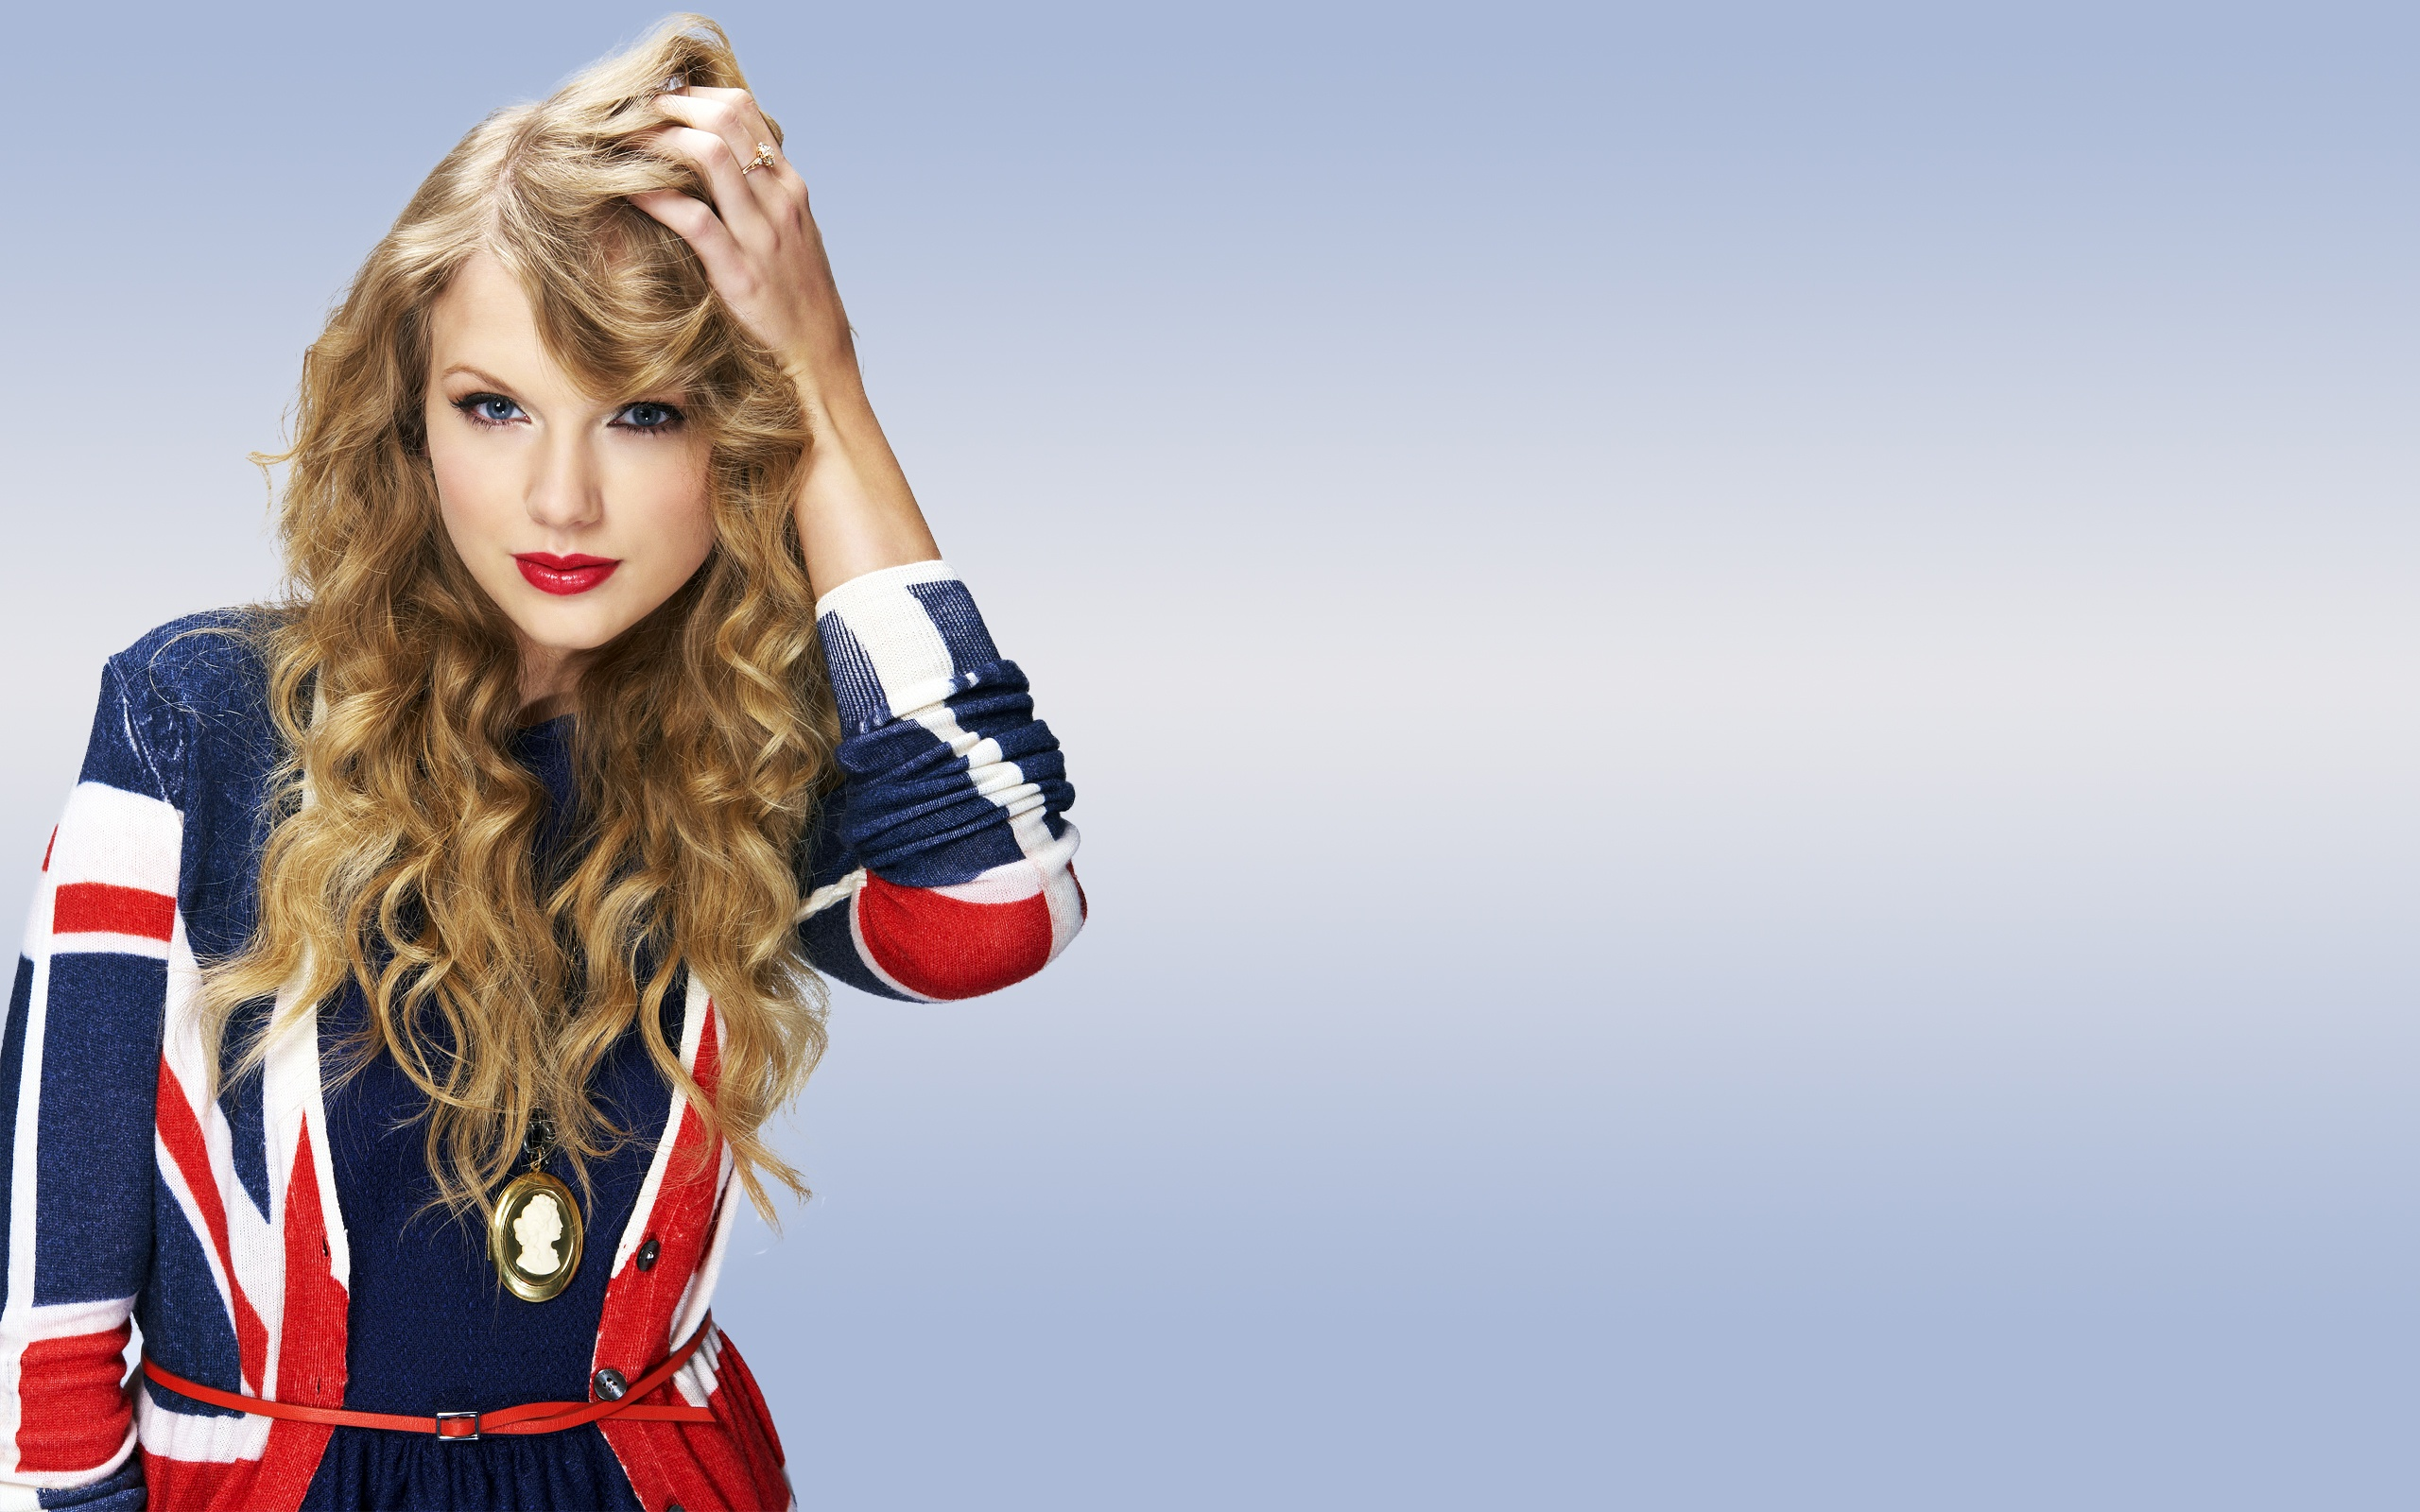 Taylor Swift Wallpaper HD Images 2560x1600